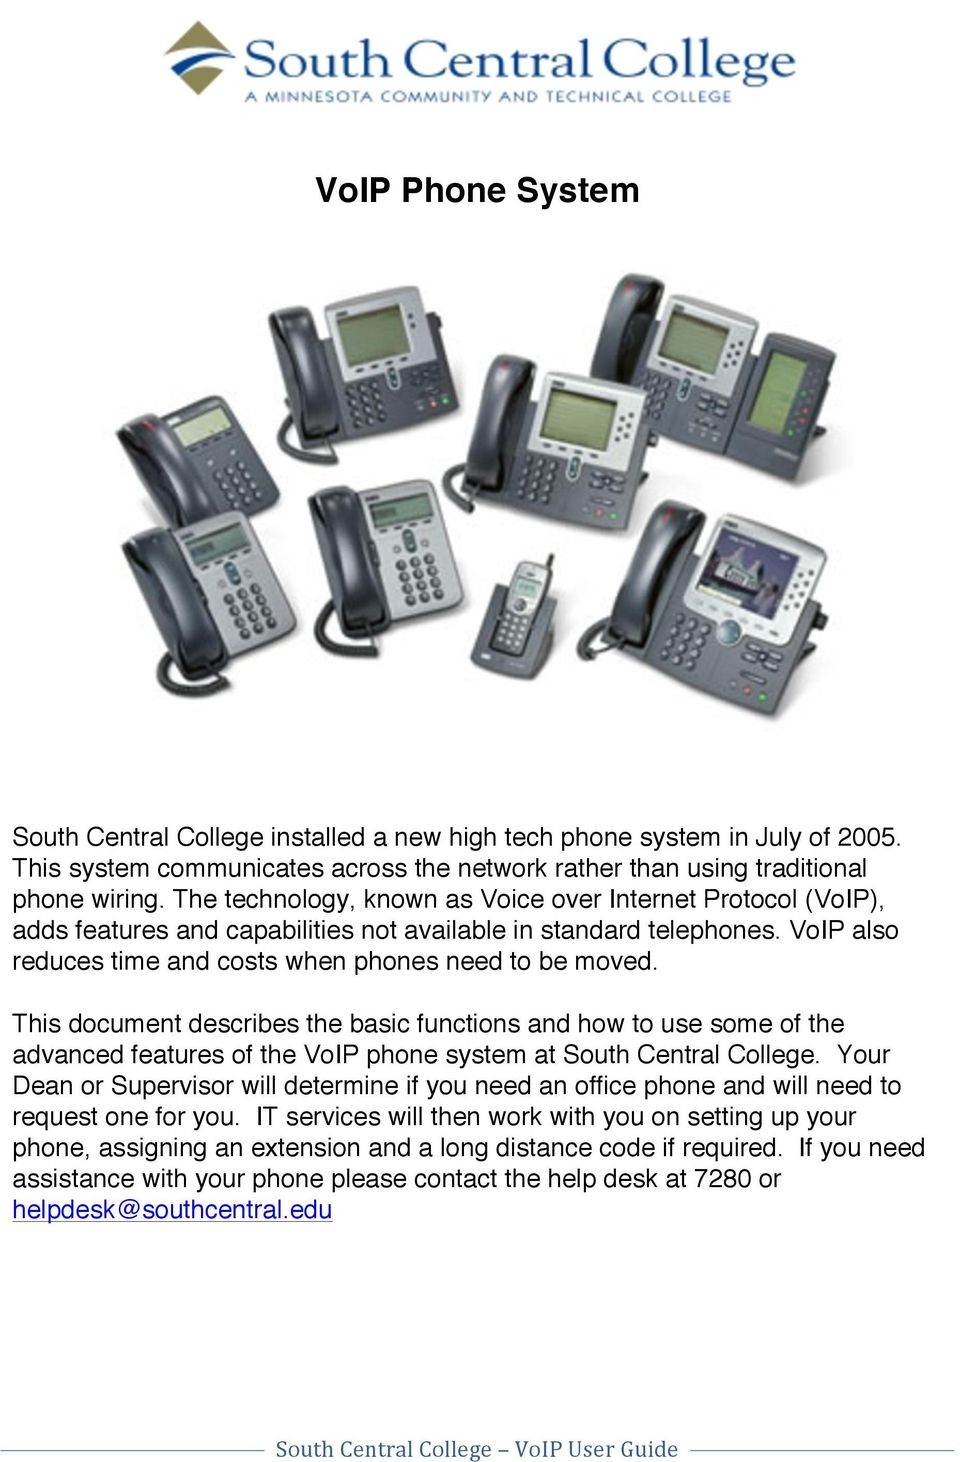 This document describes the basic functions and how to use some of the advanced features of the VoIP phone system at South Central College.